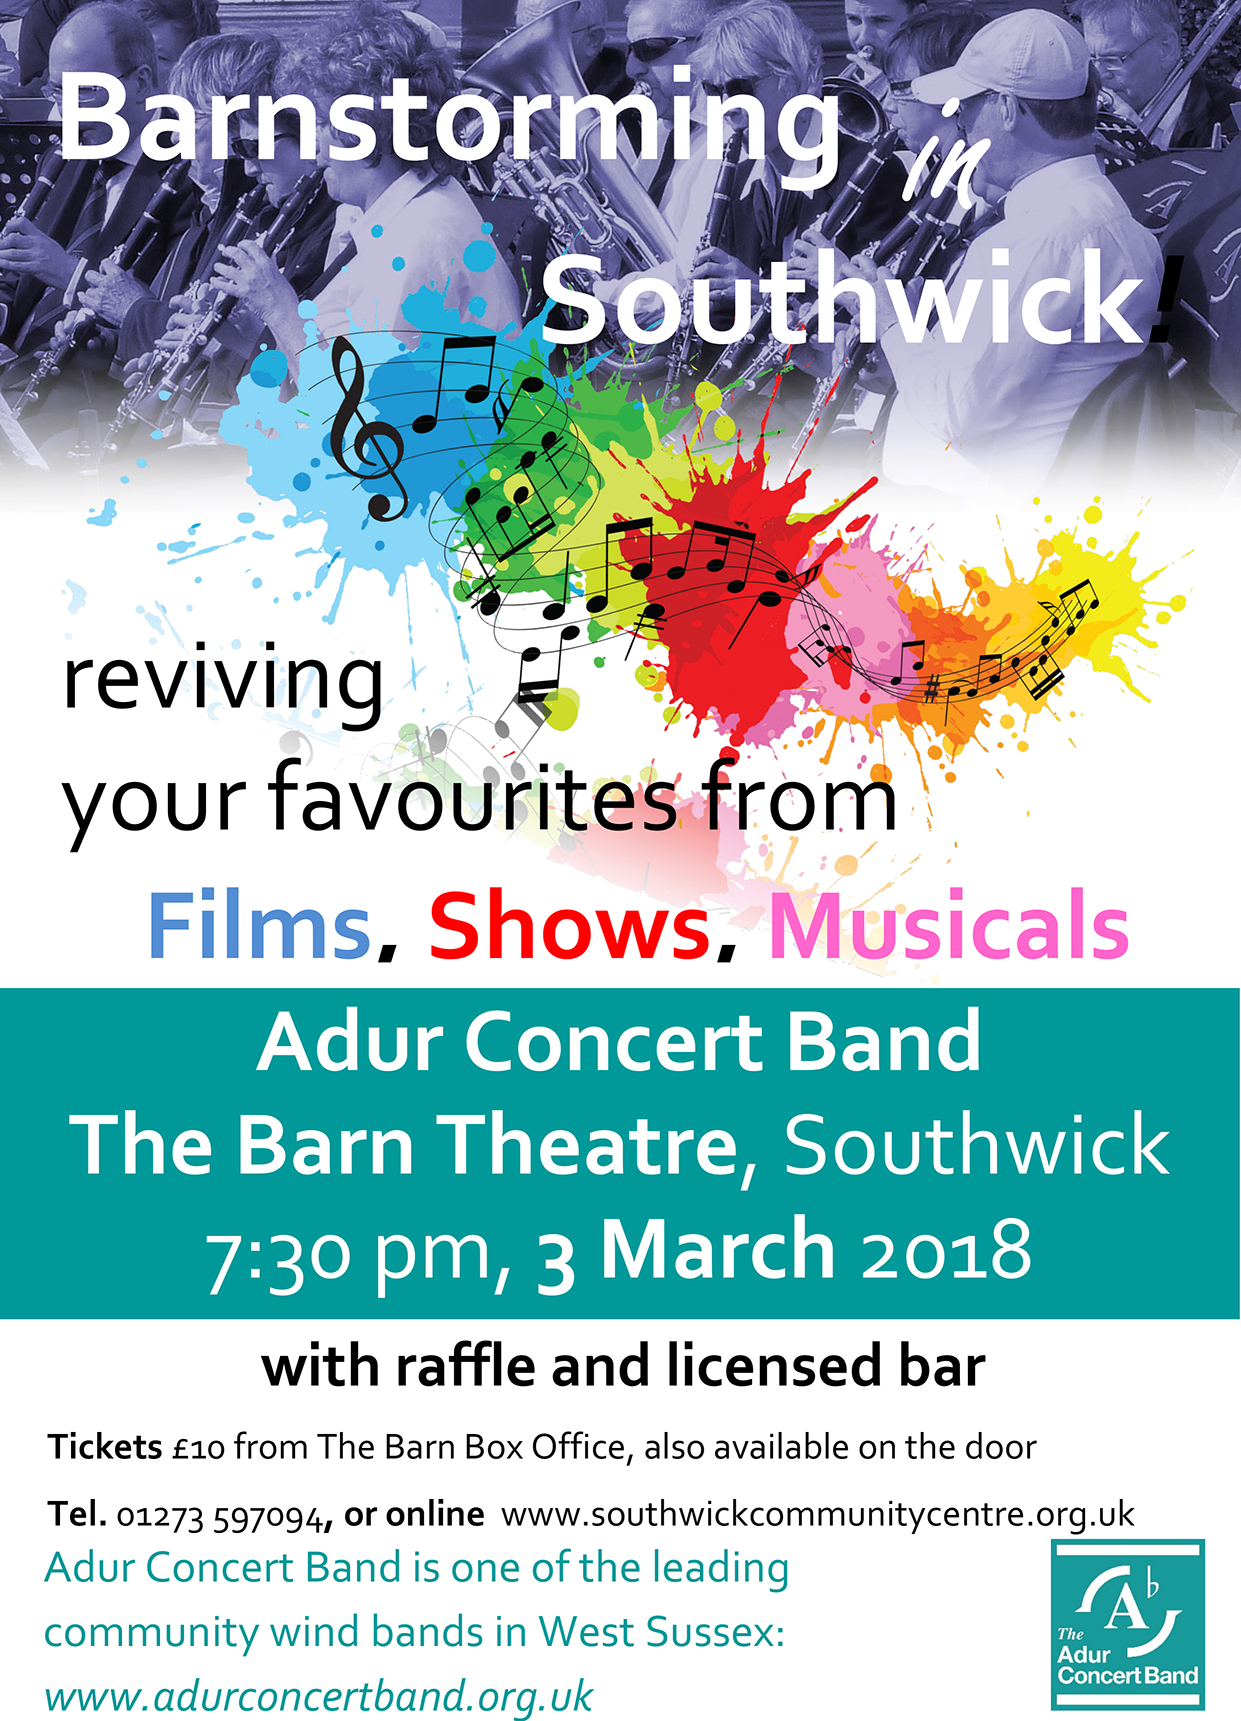 Barnstorming in Southwick with the Adur Concert Band